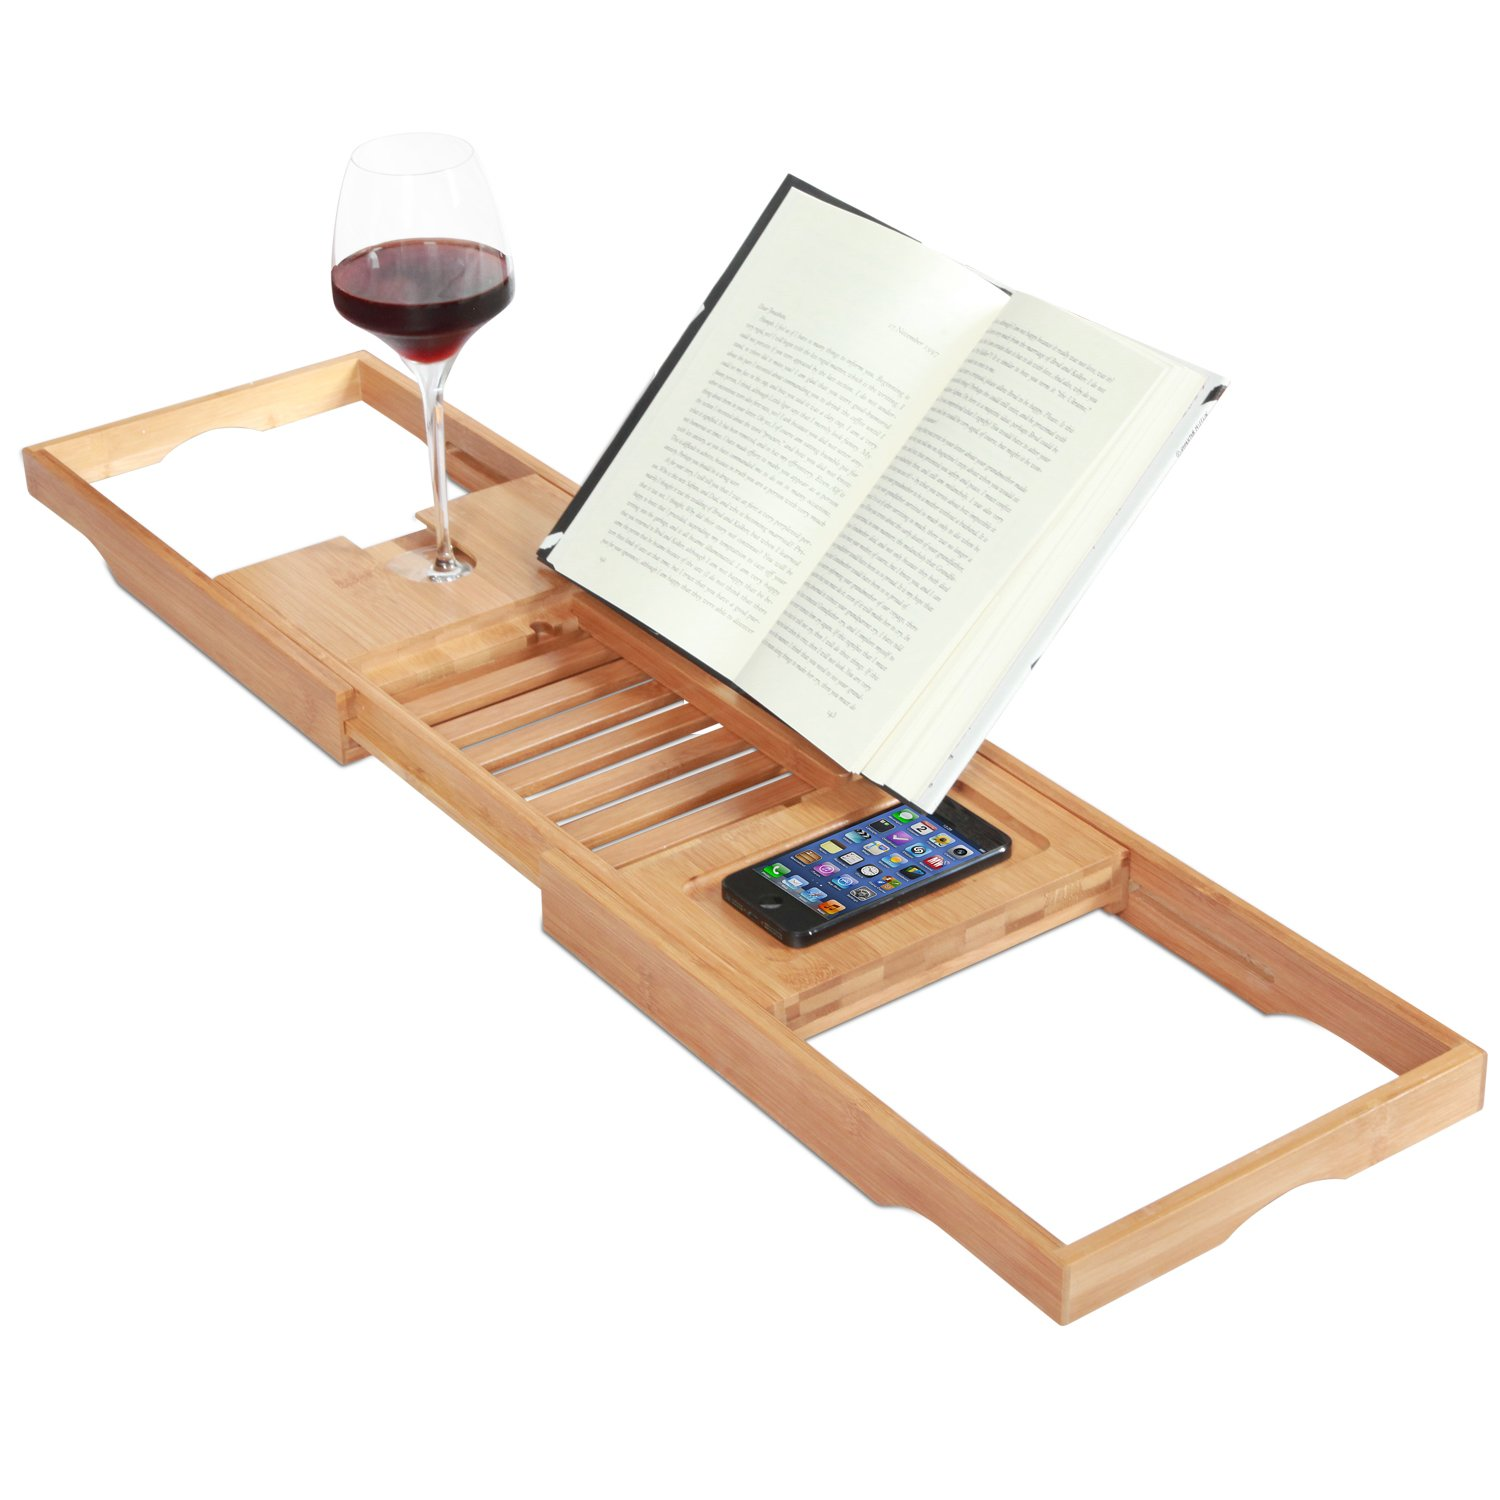 Uncategorized Bathtub Book Rack amazon com toilettree products bamboo bathtub caddy with extending sides and adjustable book holder 4 ounce beauty